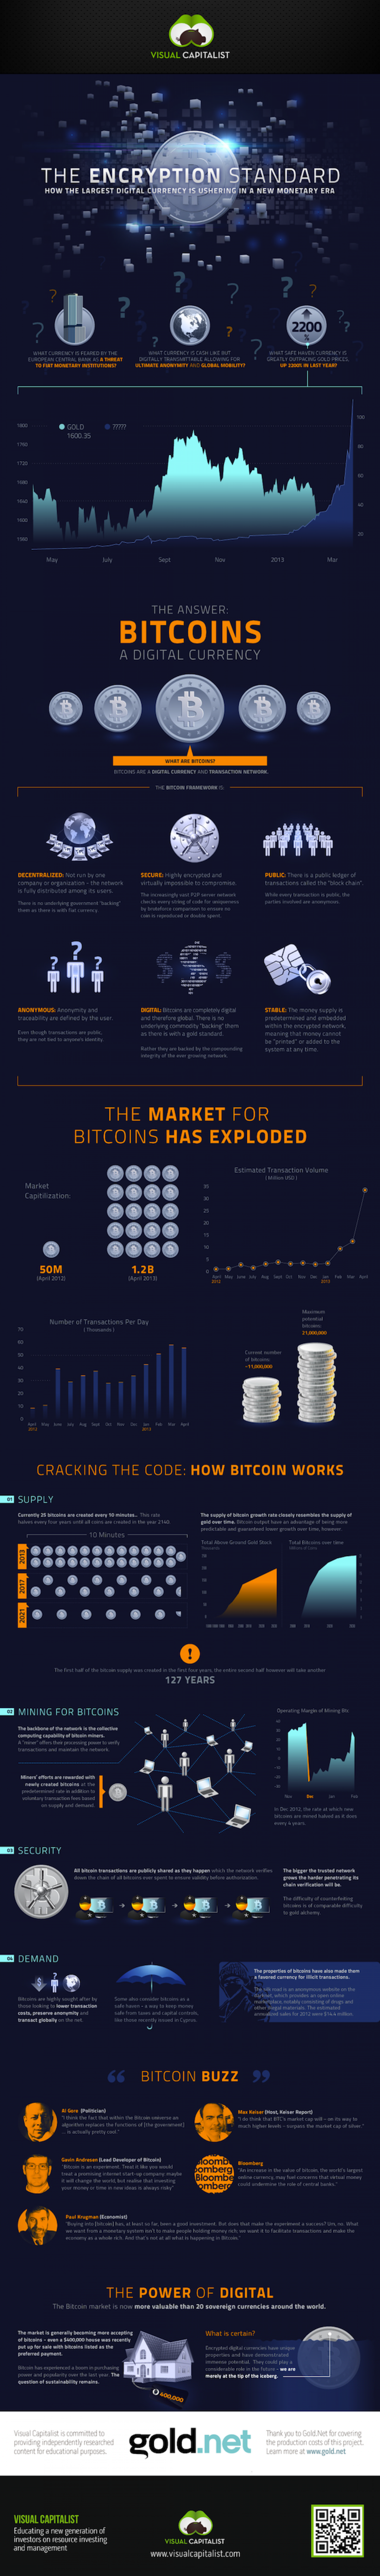 Bitcoin: The Encryption Standard Infographic